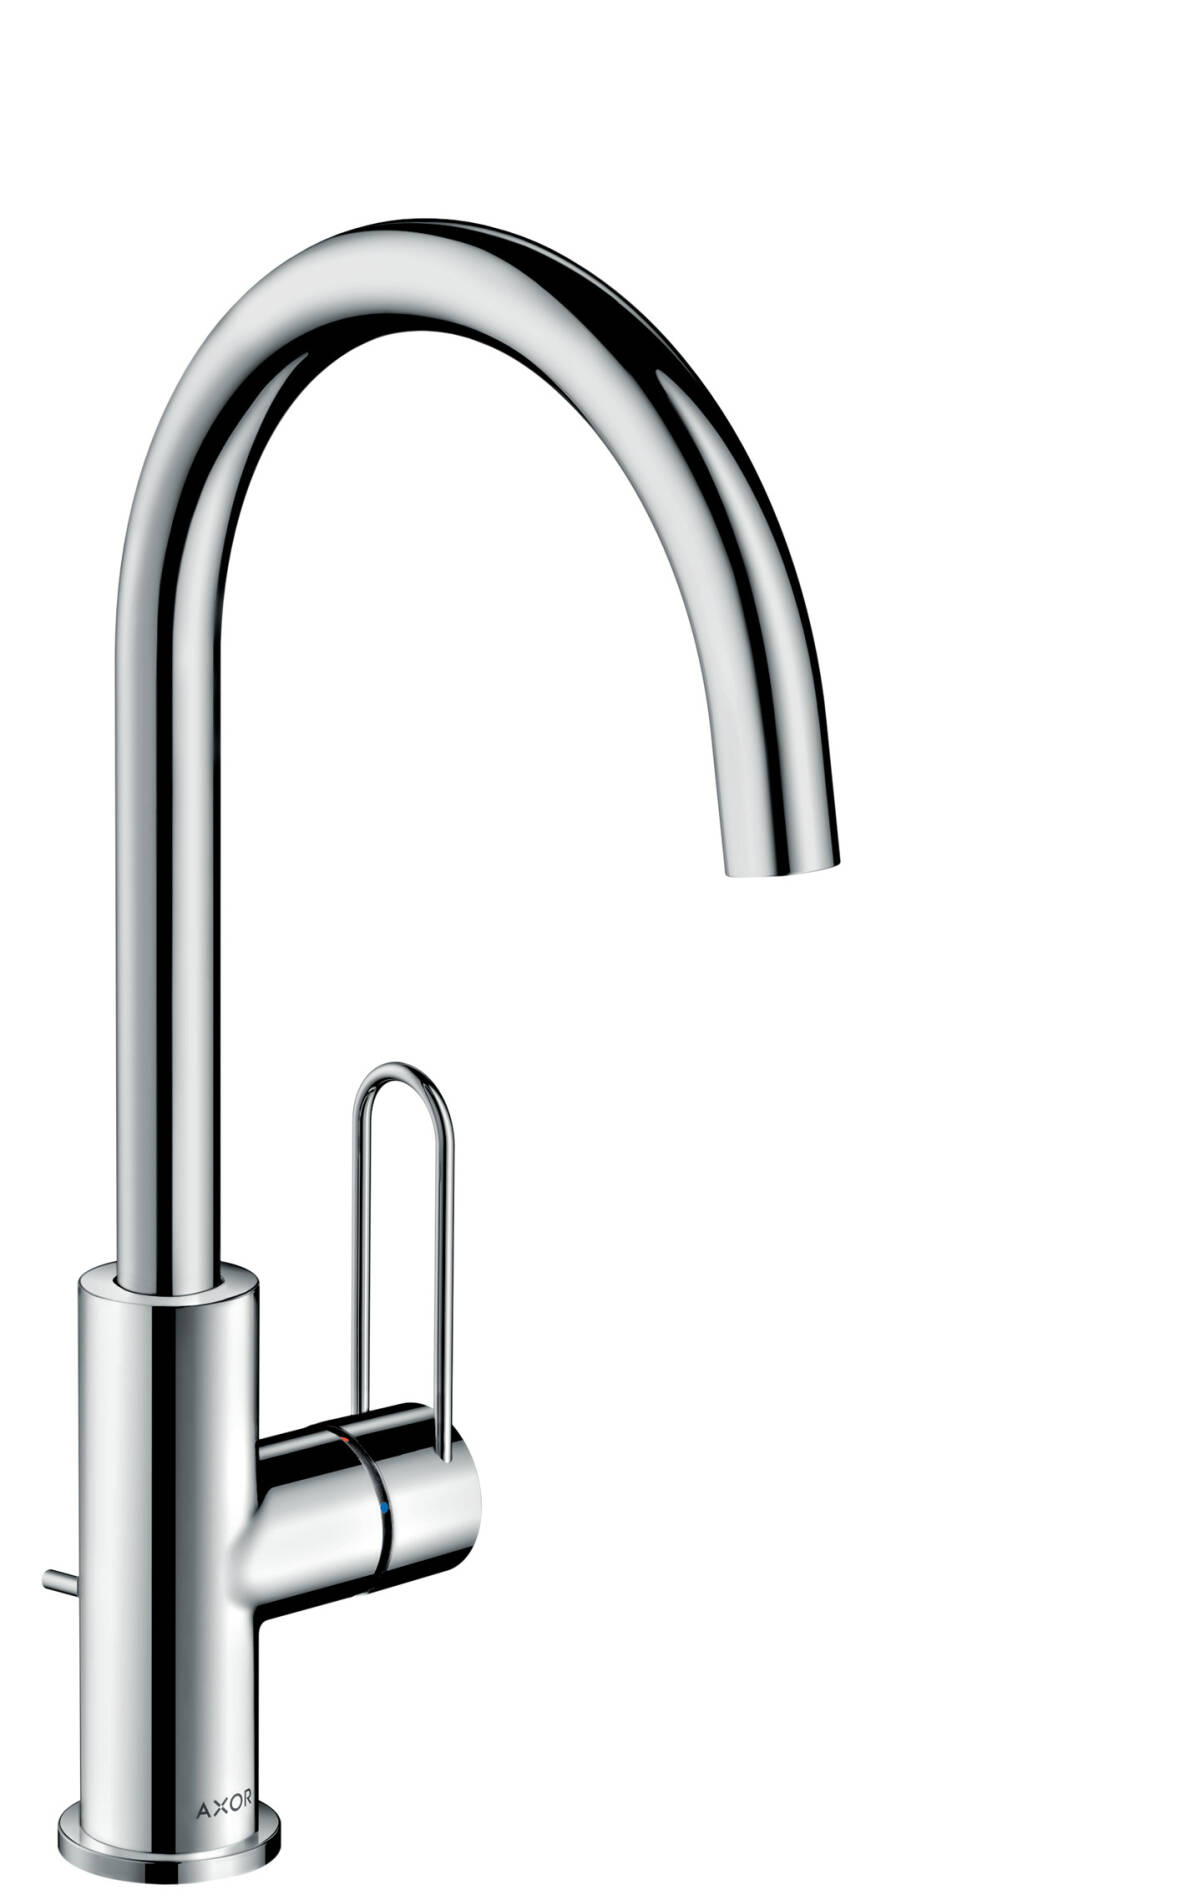 Single lever basin mixer 240 with loop handle and pop-up waste set, Chrome, 38036000